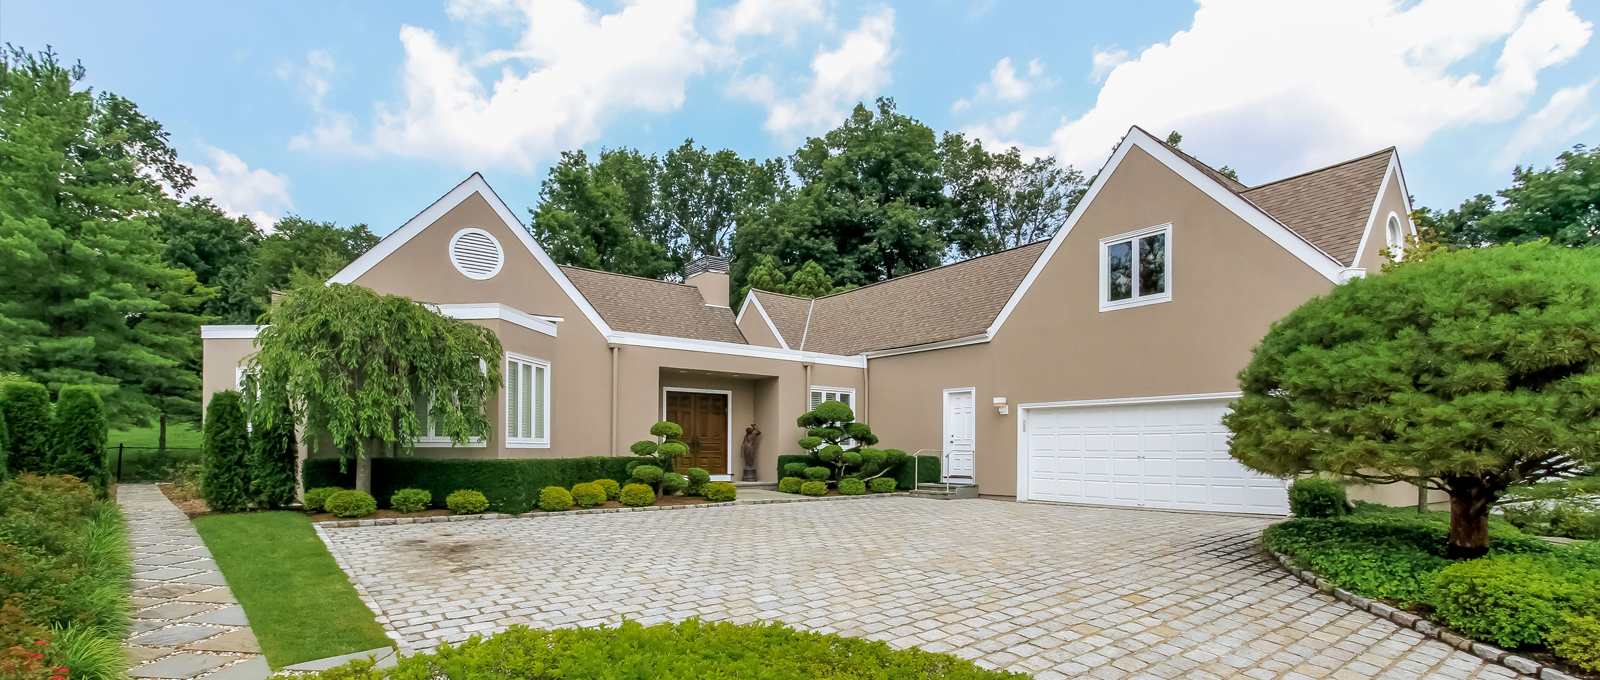 Single Family Home for Sale at The Crossing 38 The Crossing Purchase, New York 10577 United States